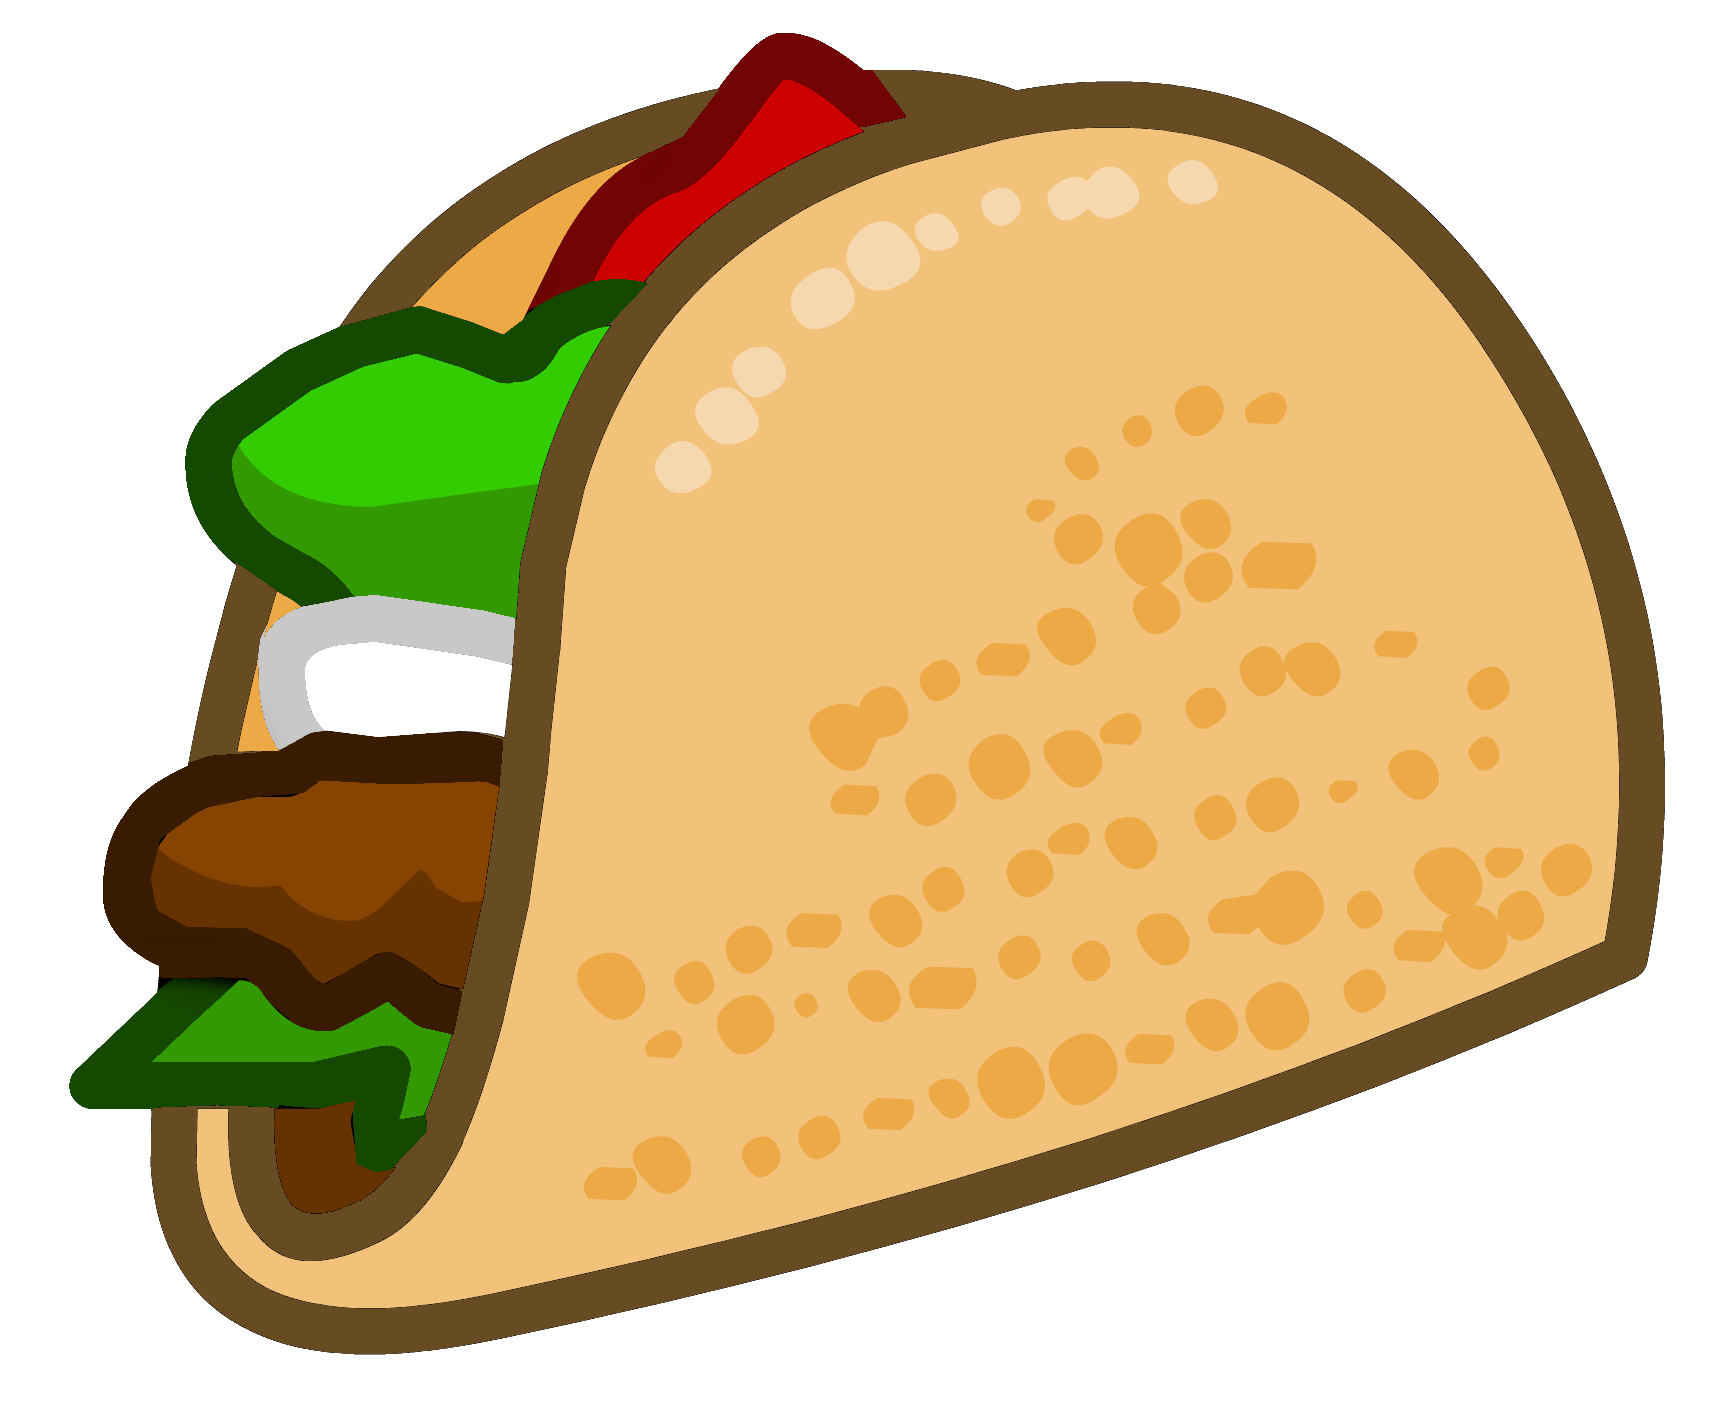 Taco clipart at getdrawings. Youtube subscribe bell icon png banner black and white download